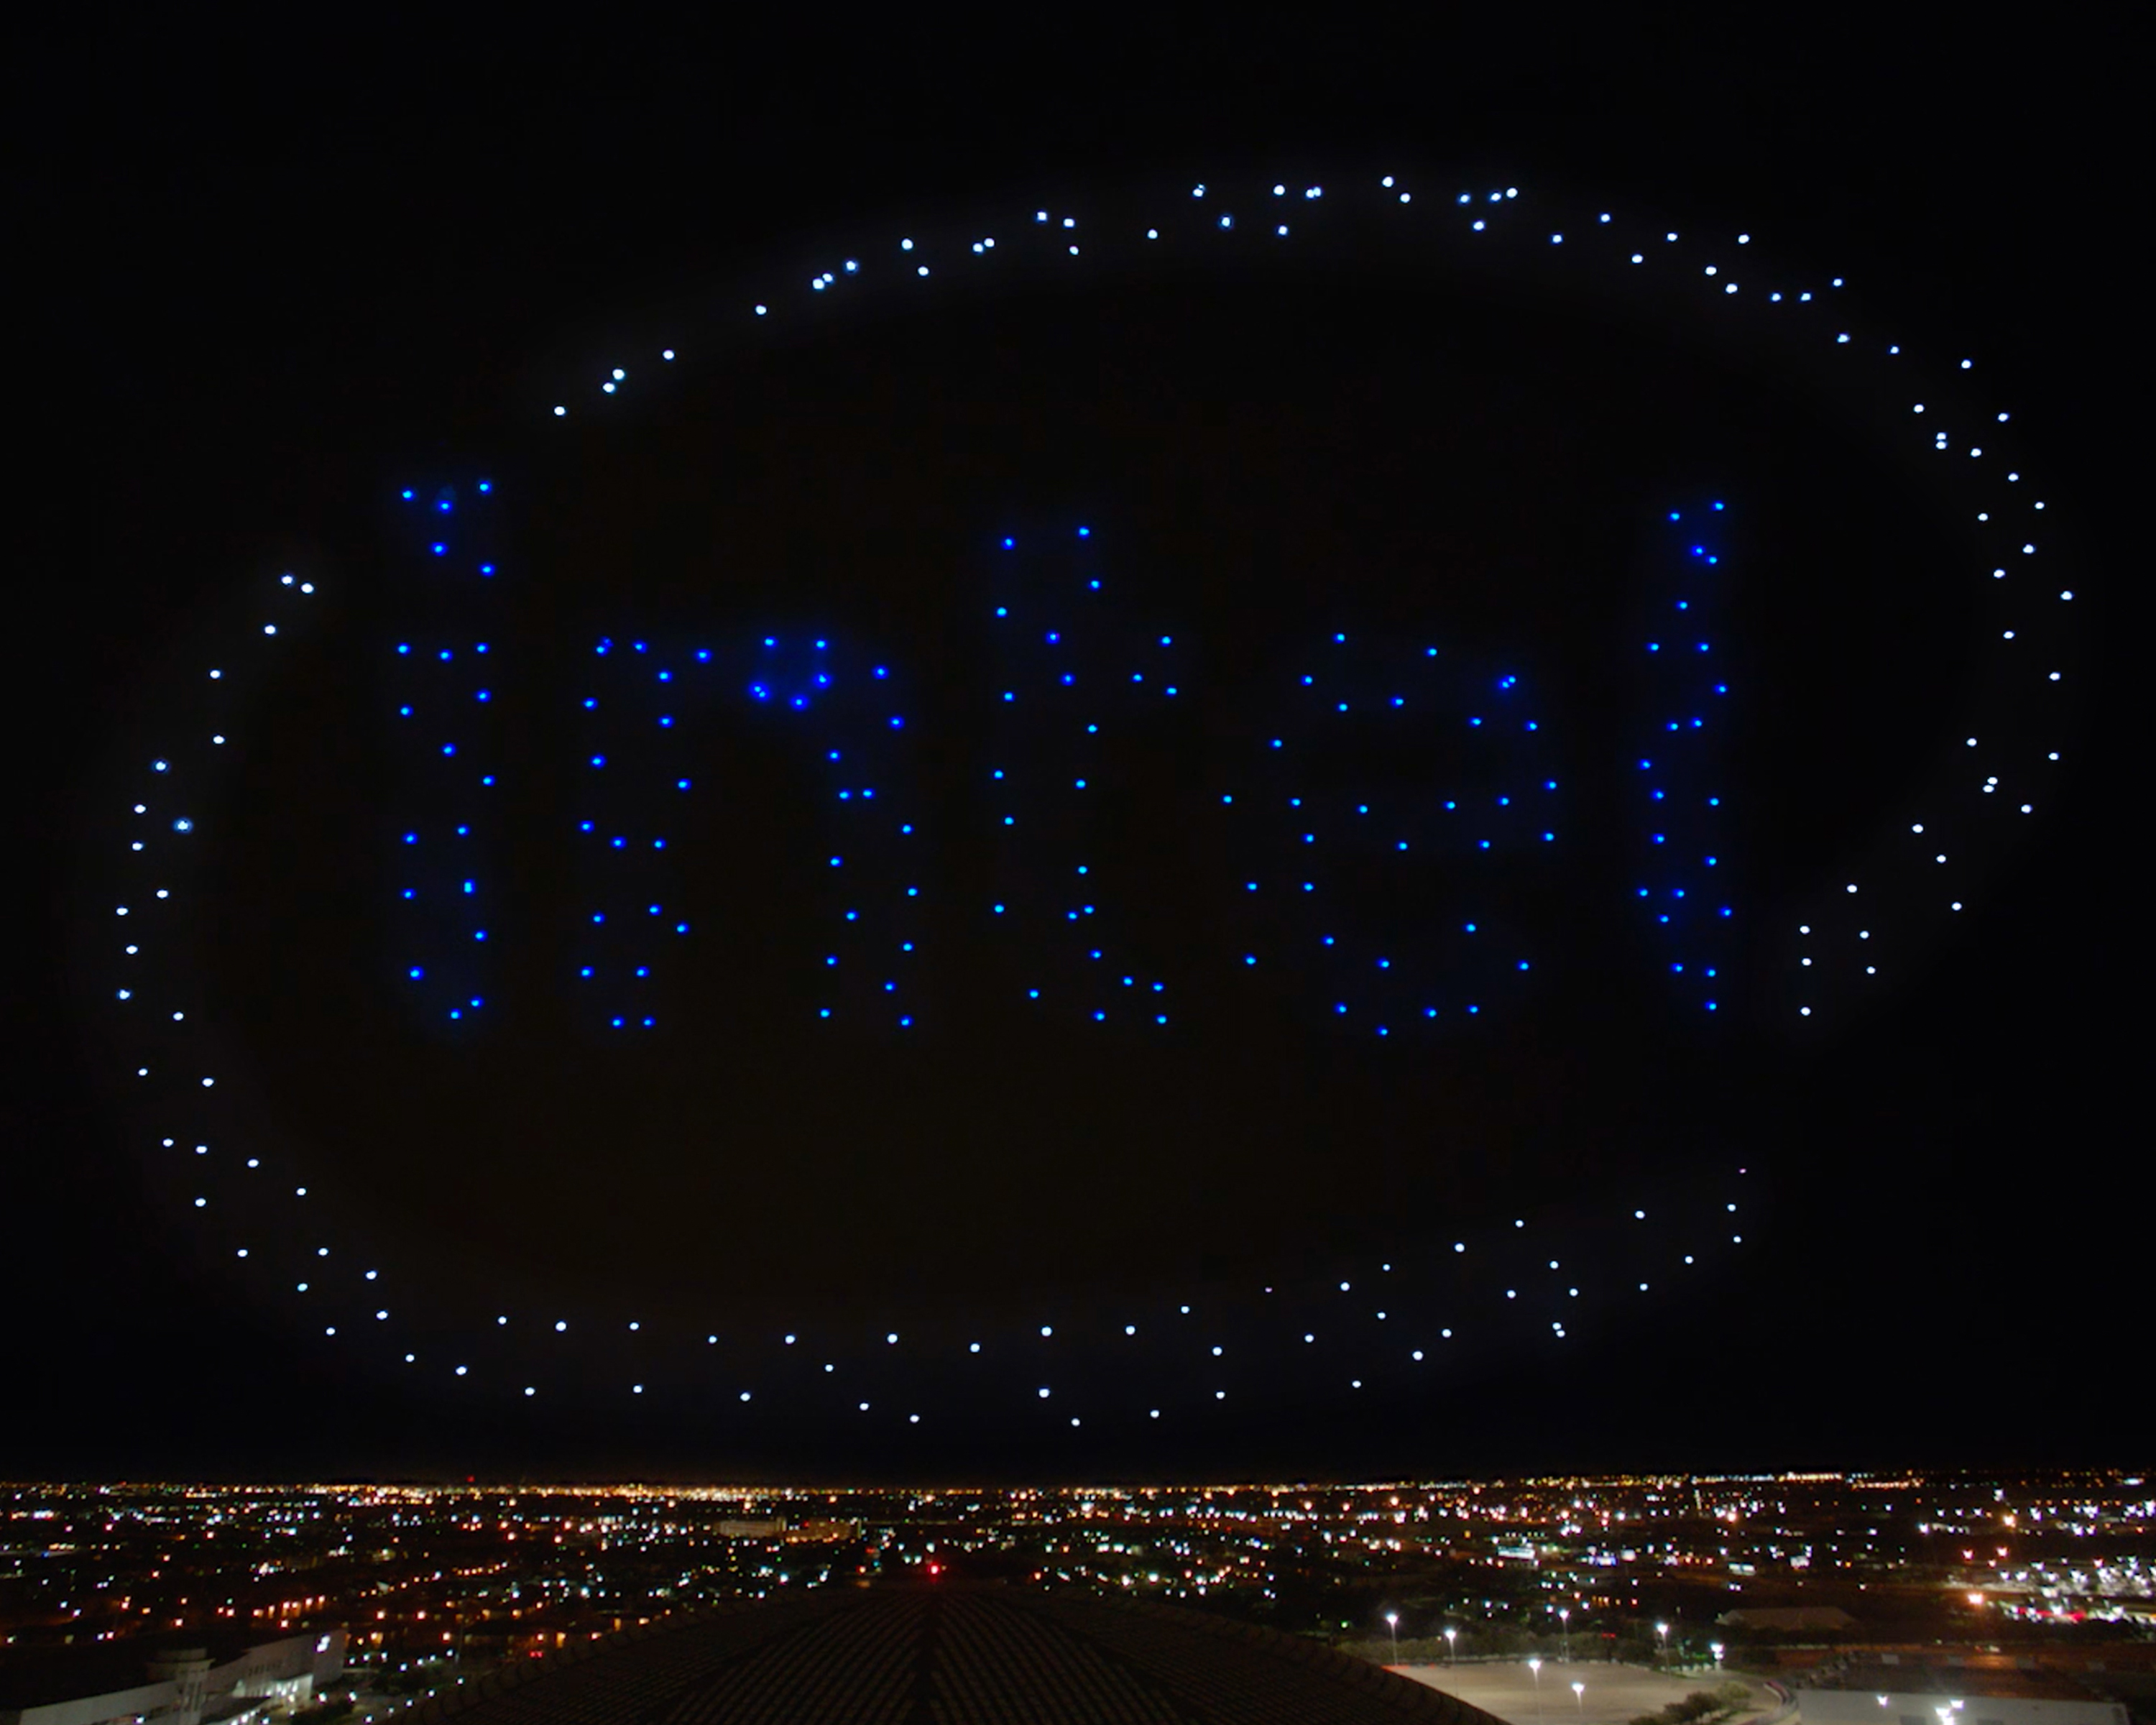 Intel Drones x Super Bowl Halftime Show with Lady Gaga Thumbnail